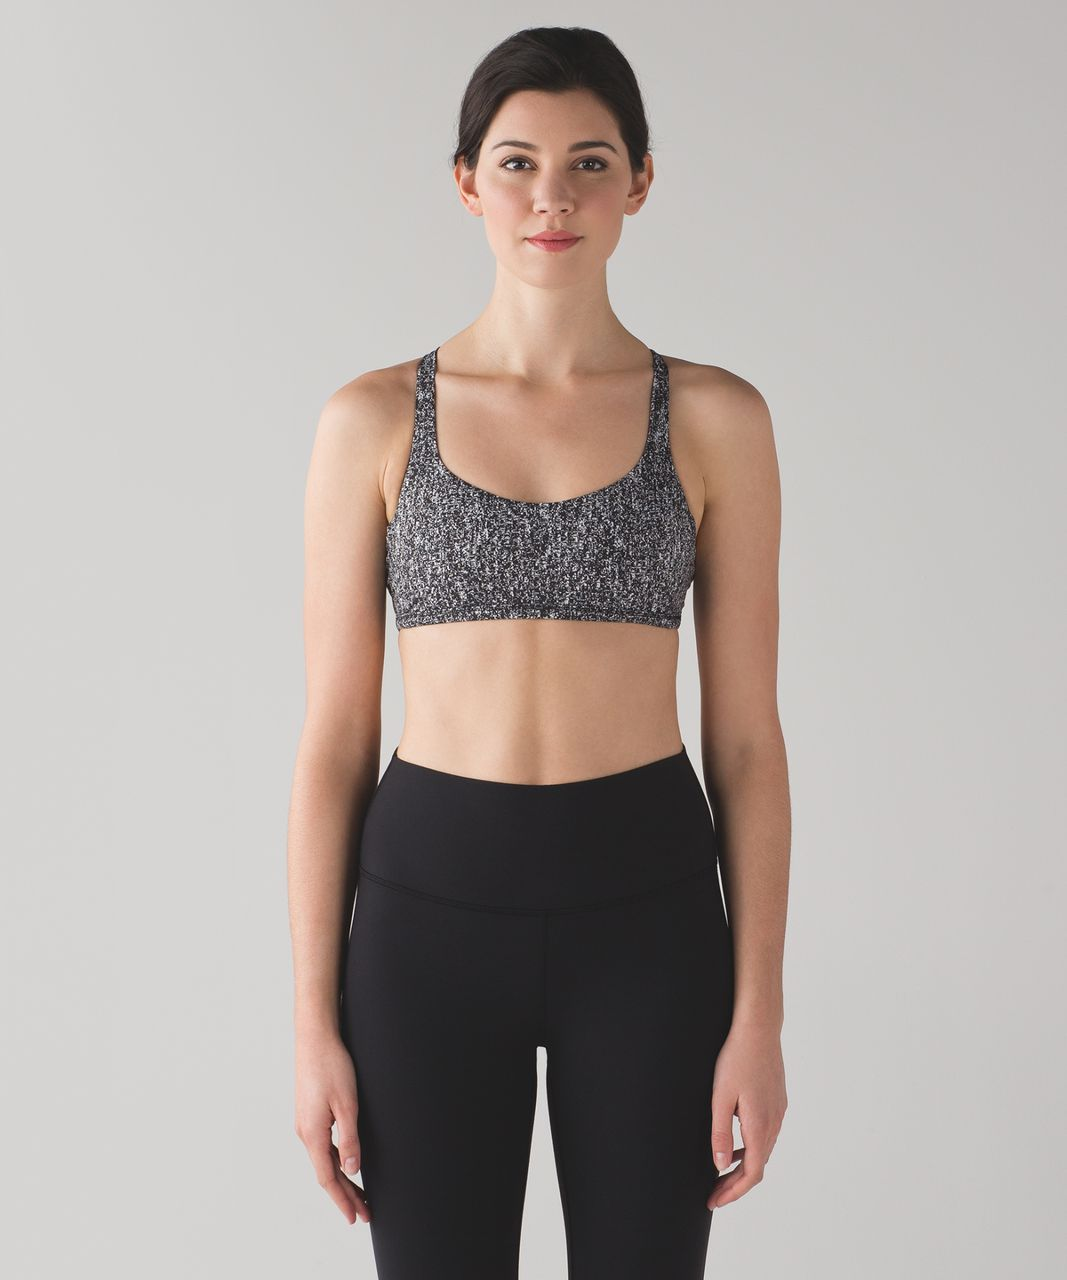 5806f309a0 Lululemon Free To Be Zen Bra - Power Luxtreme Suited Jacquard Black White